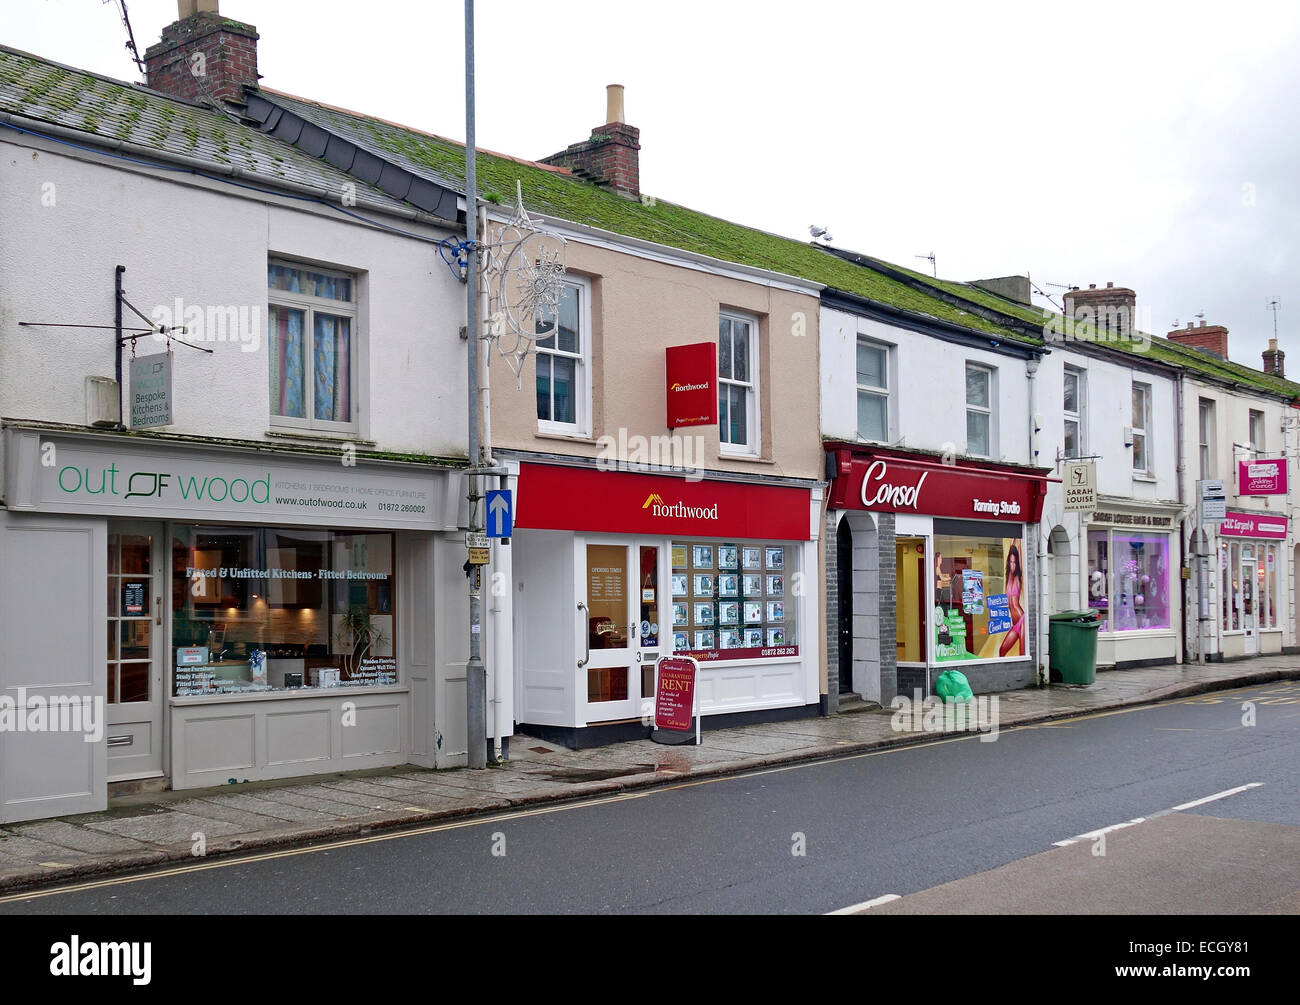 small family businesses in the town centre of truro, cornwall, uk - Stock Image